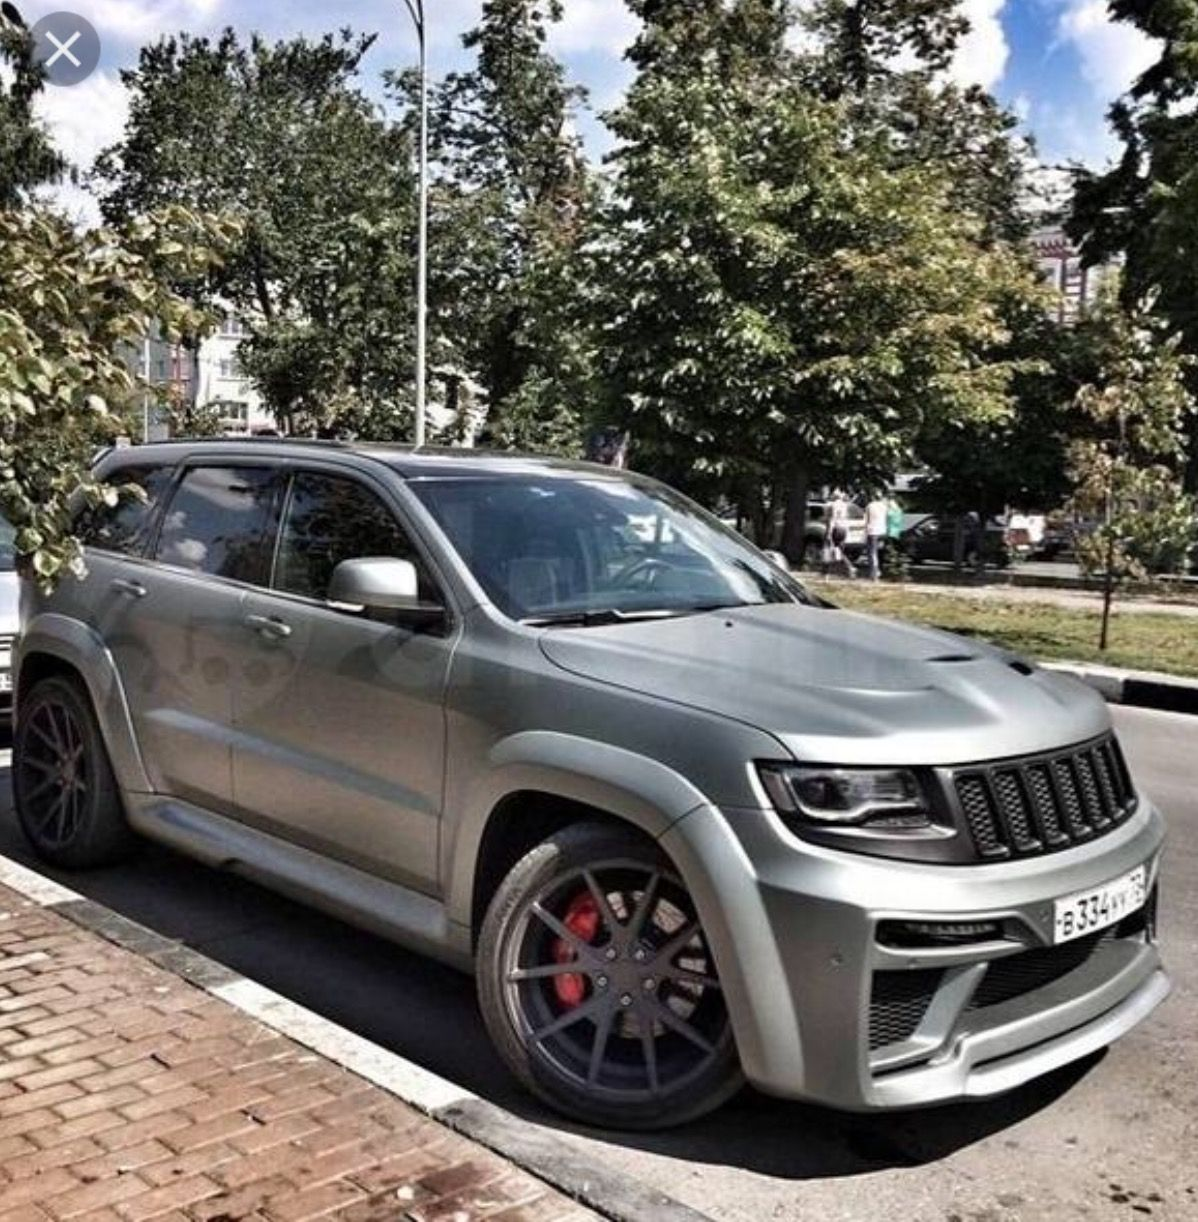 jeep grand cherokee srt8 hellcat tyrannos edition (707hp v8